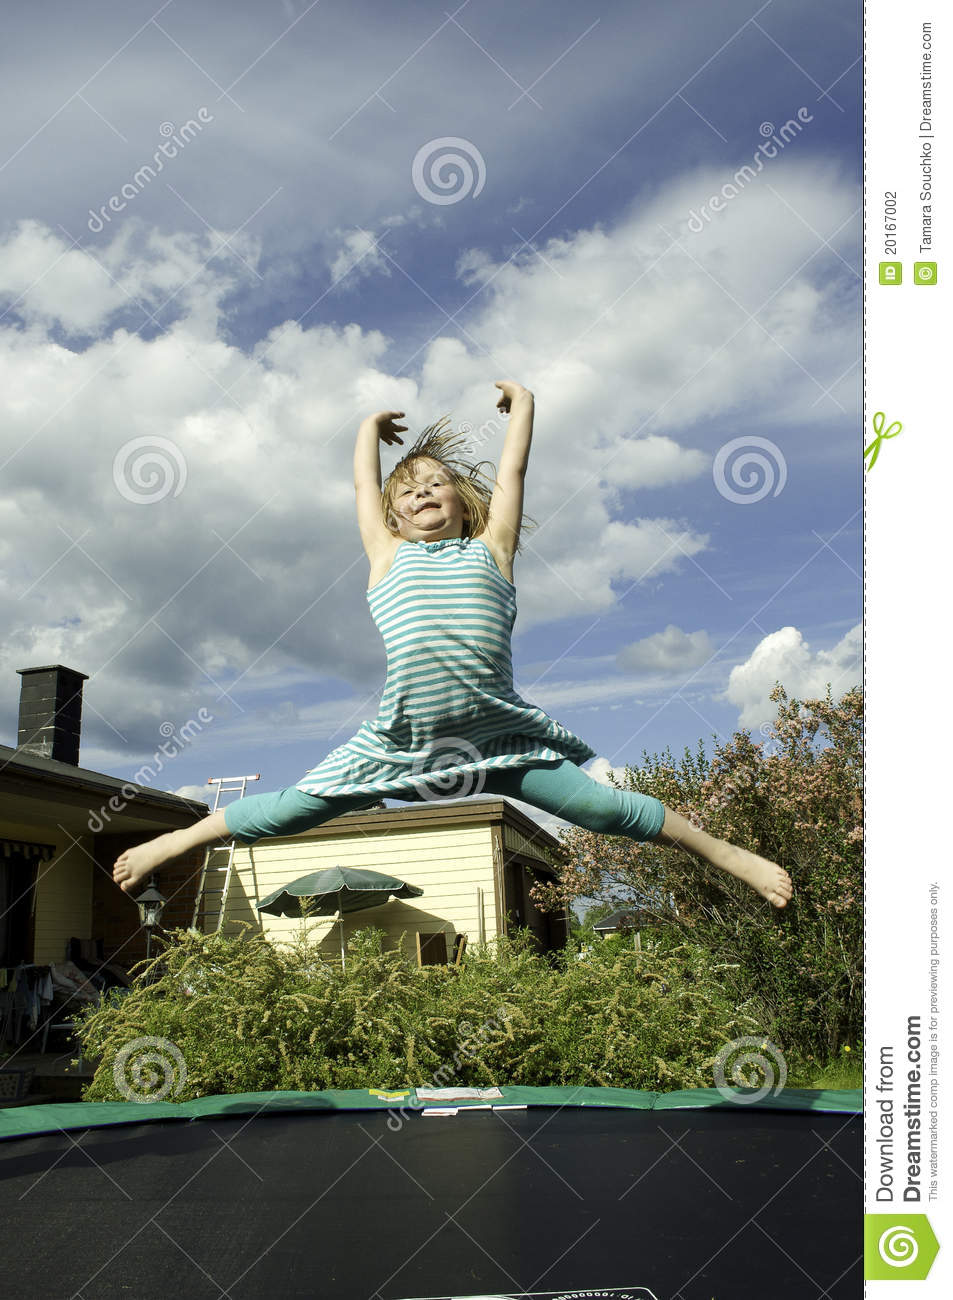 Girl Jumping On A Trampoline Stock Photography - Image -1885